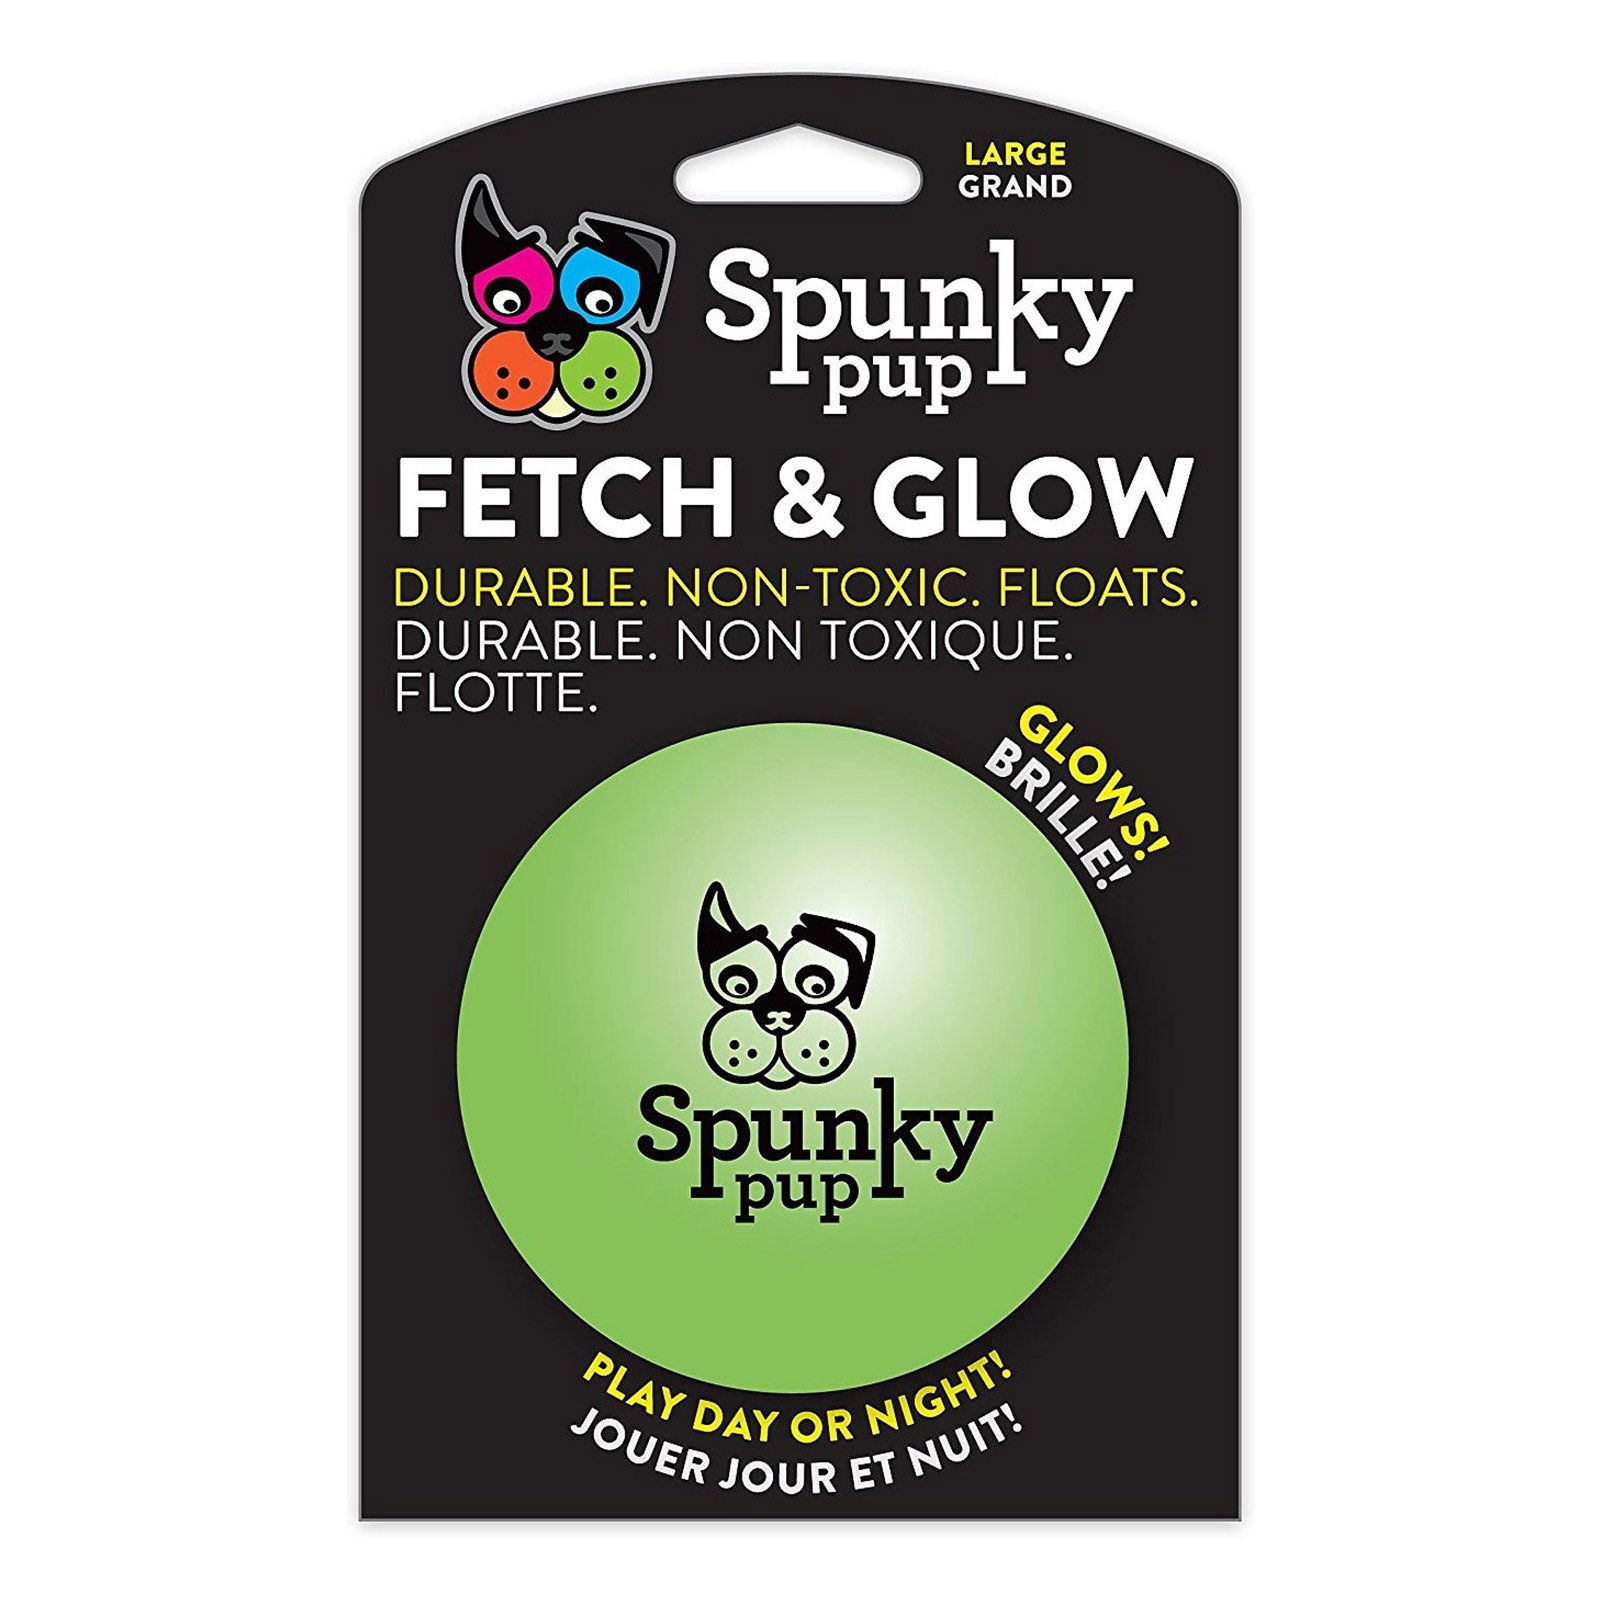 Spunky-pup-Fetch-and-Glow-Ball-large_07252021_235805.jpg